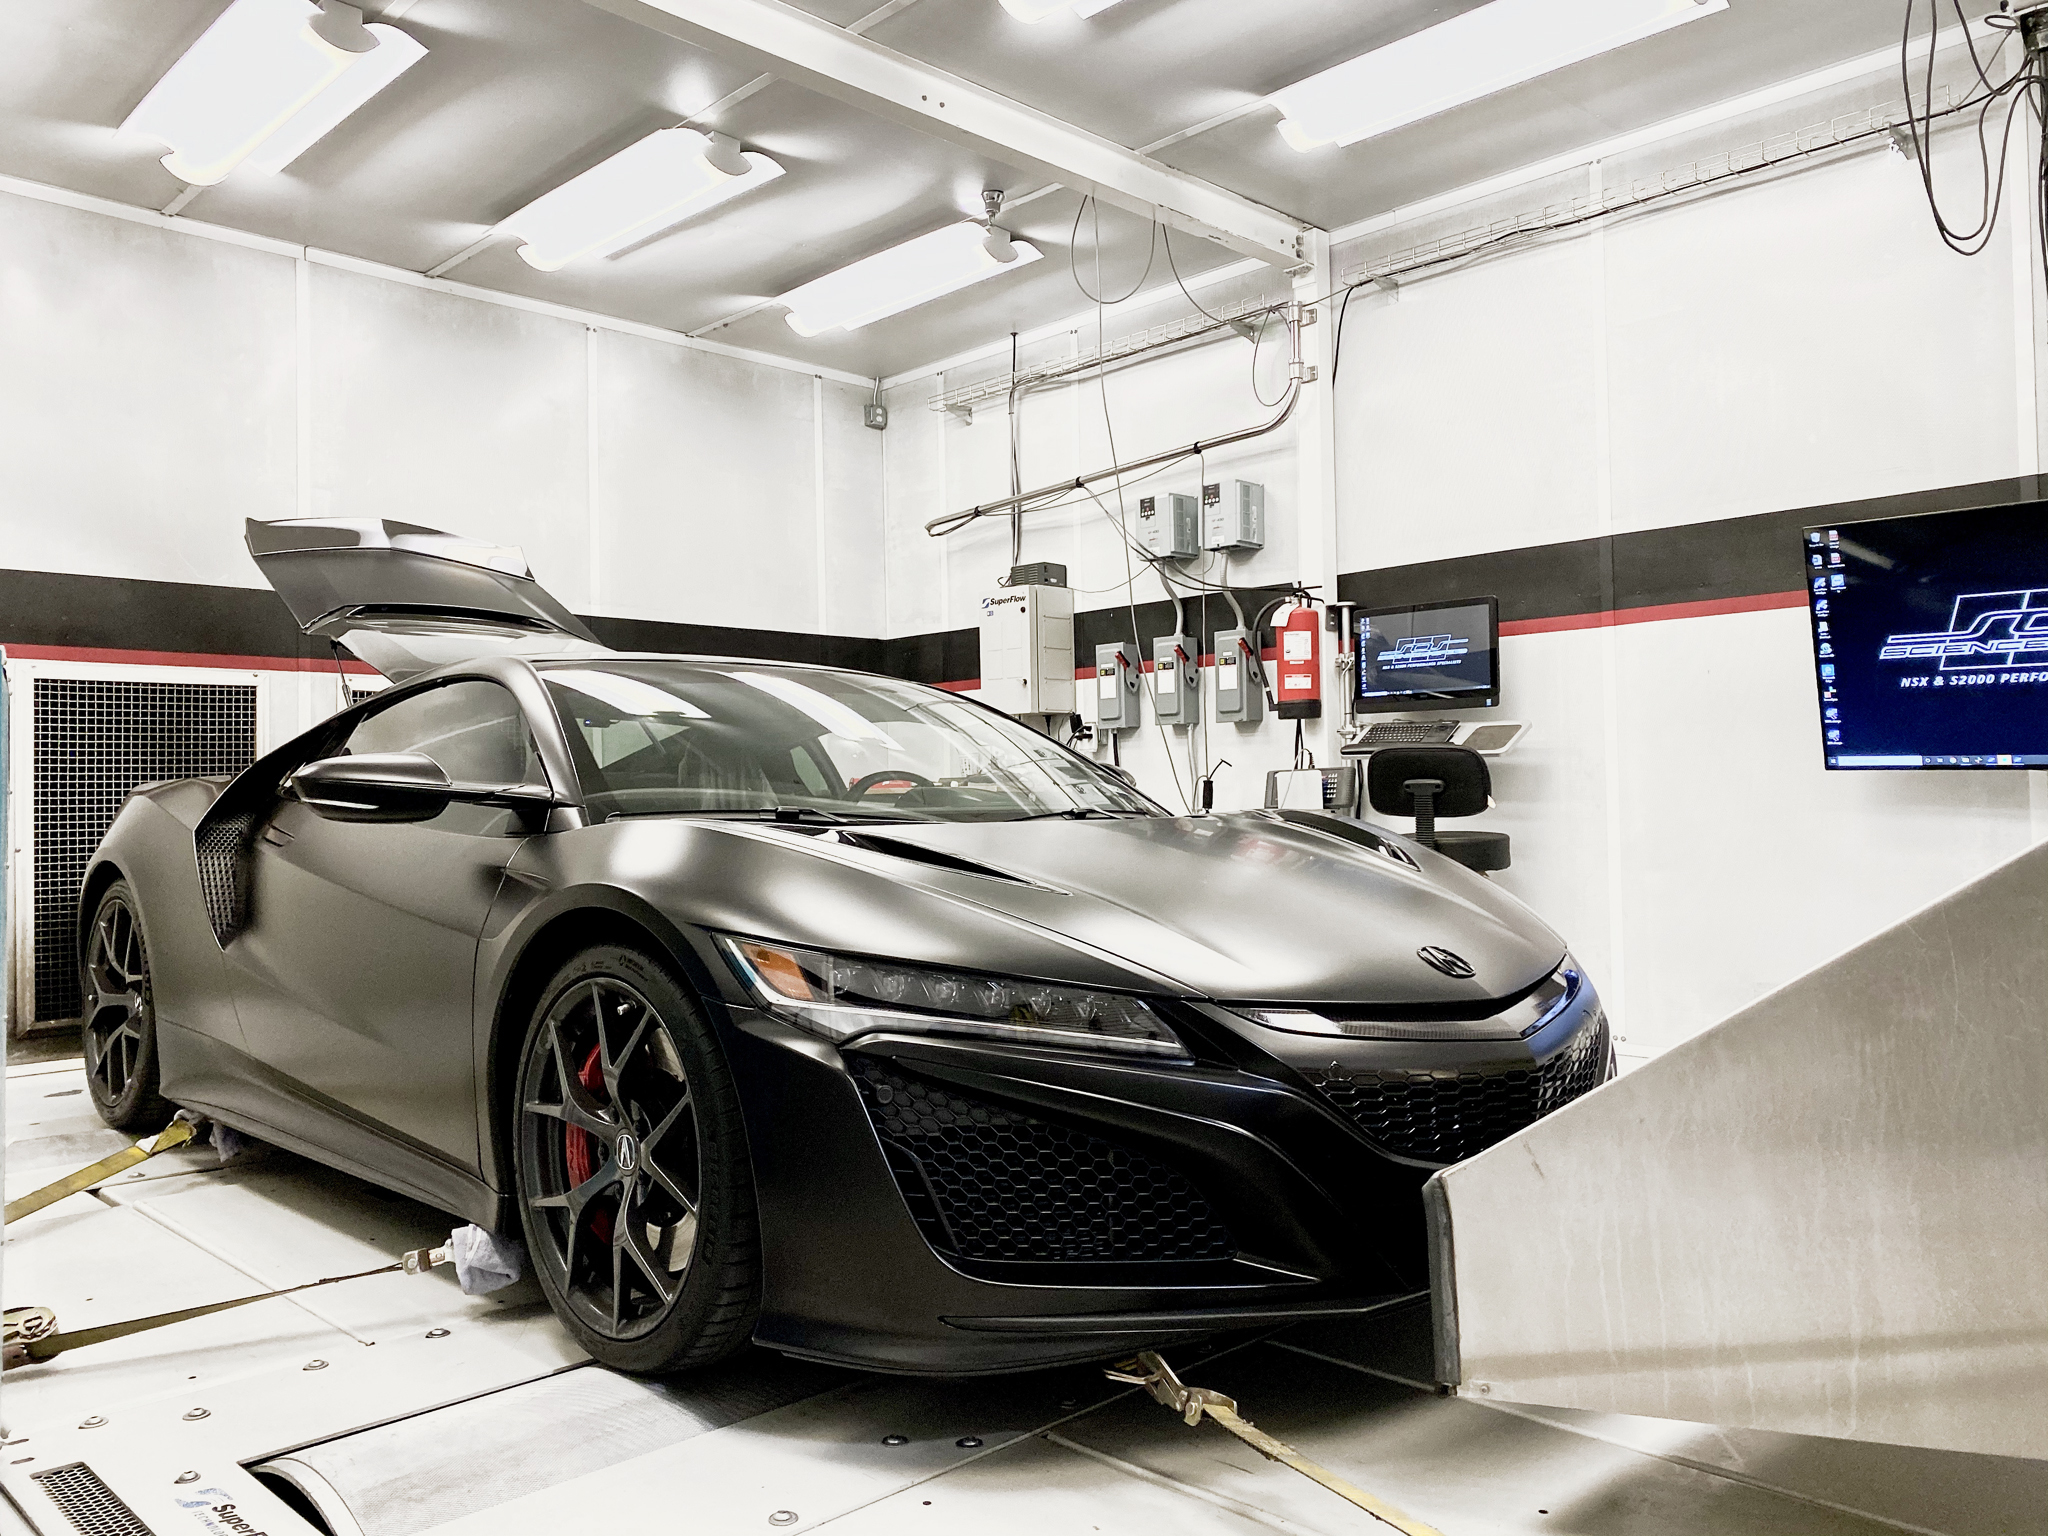 New Tires & Power Loss? Insist on Road Force Balancing for your Second Gen NSX